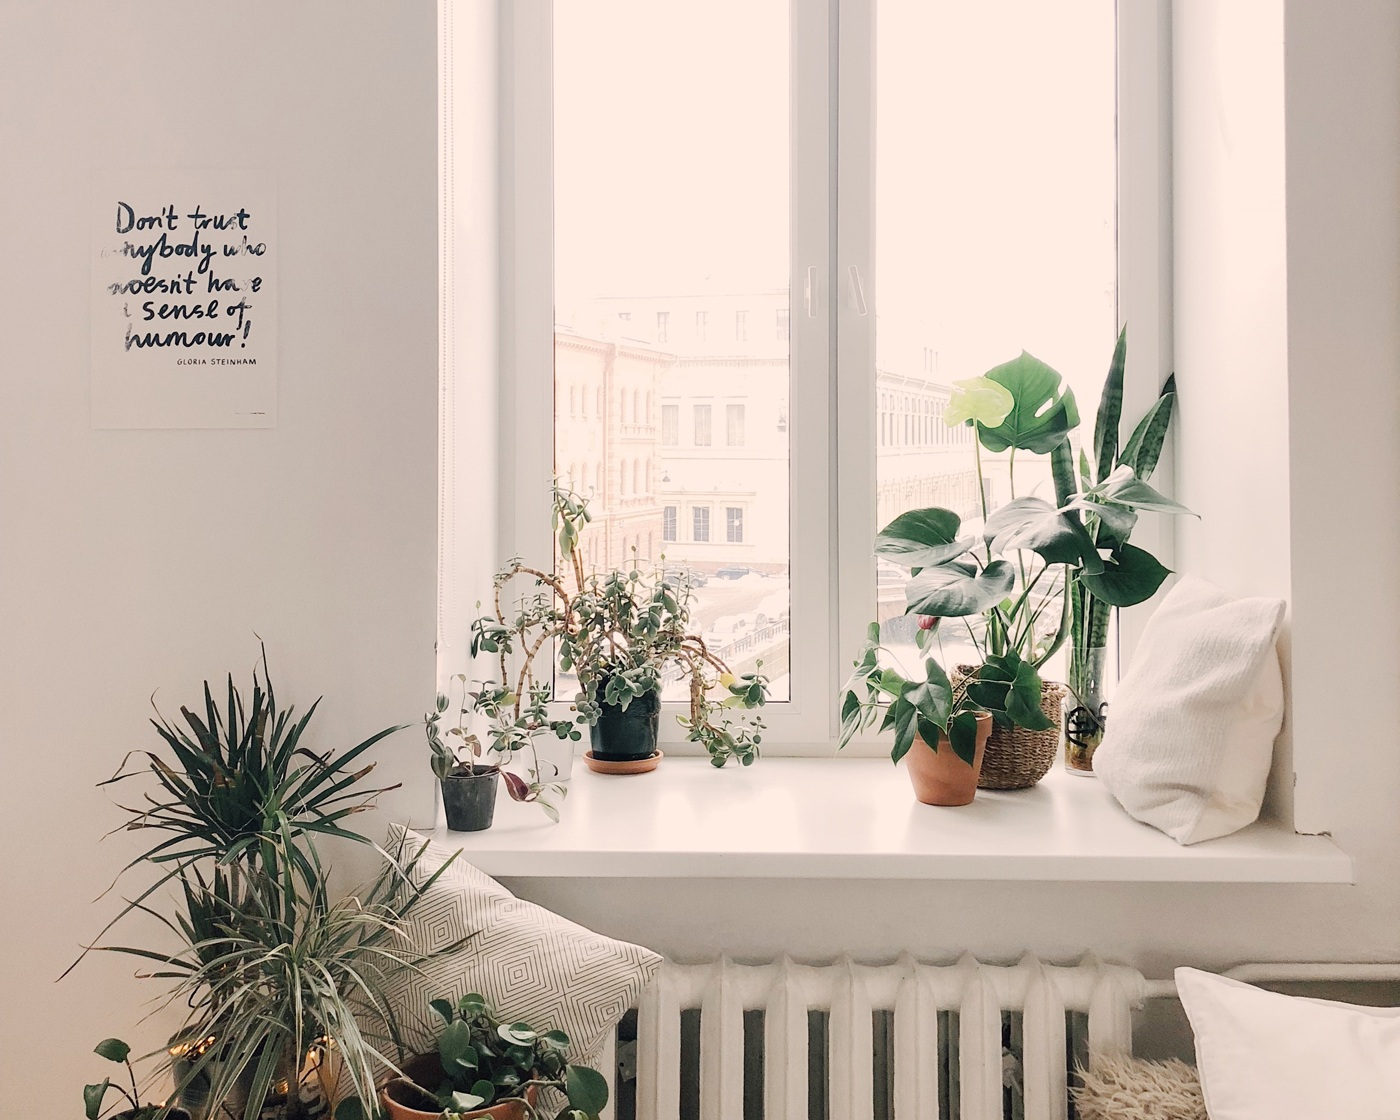 What's your vibe? - We asked Christies Home Living for some tips on how to create a peaceful atmosphere in your home.